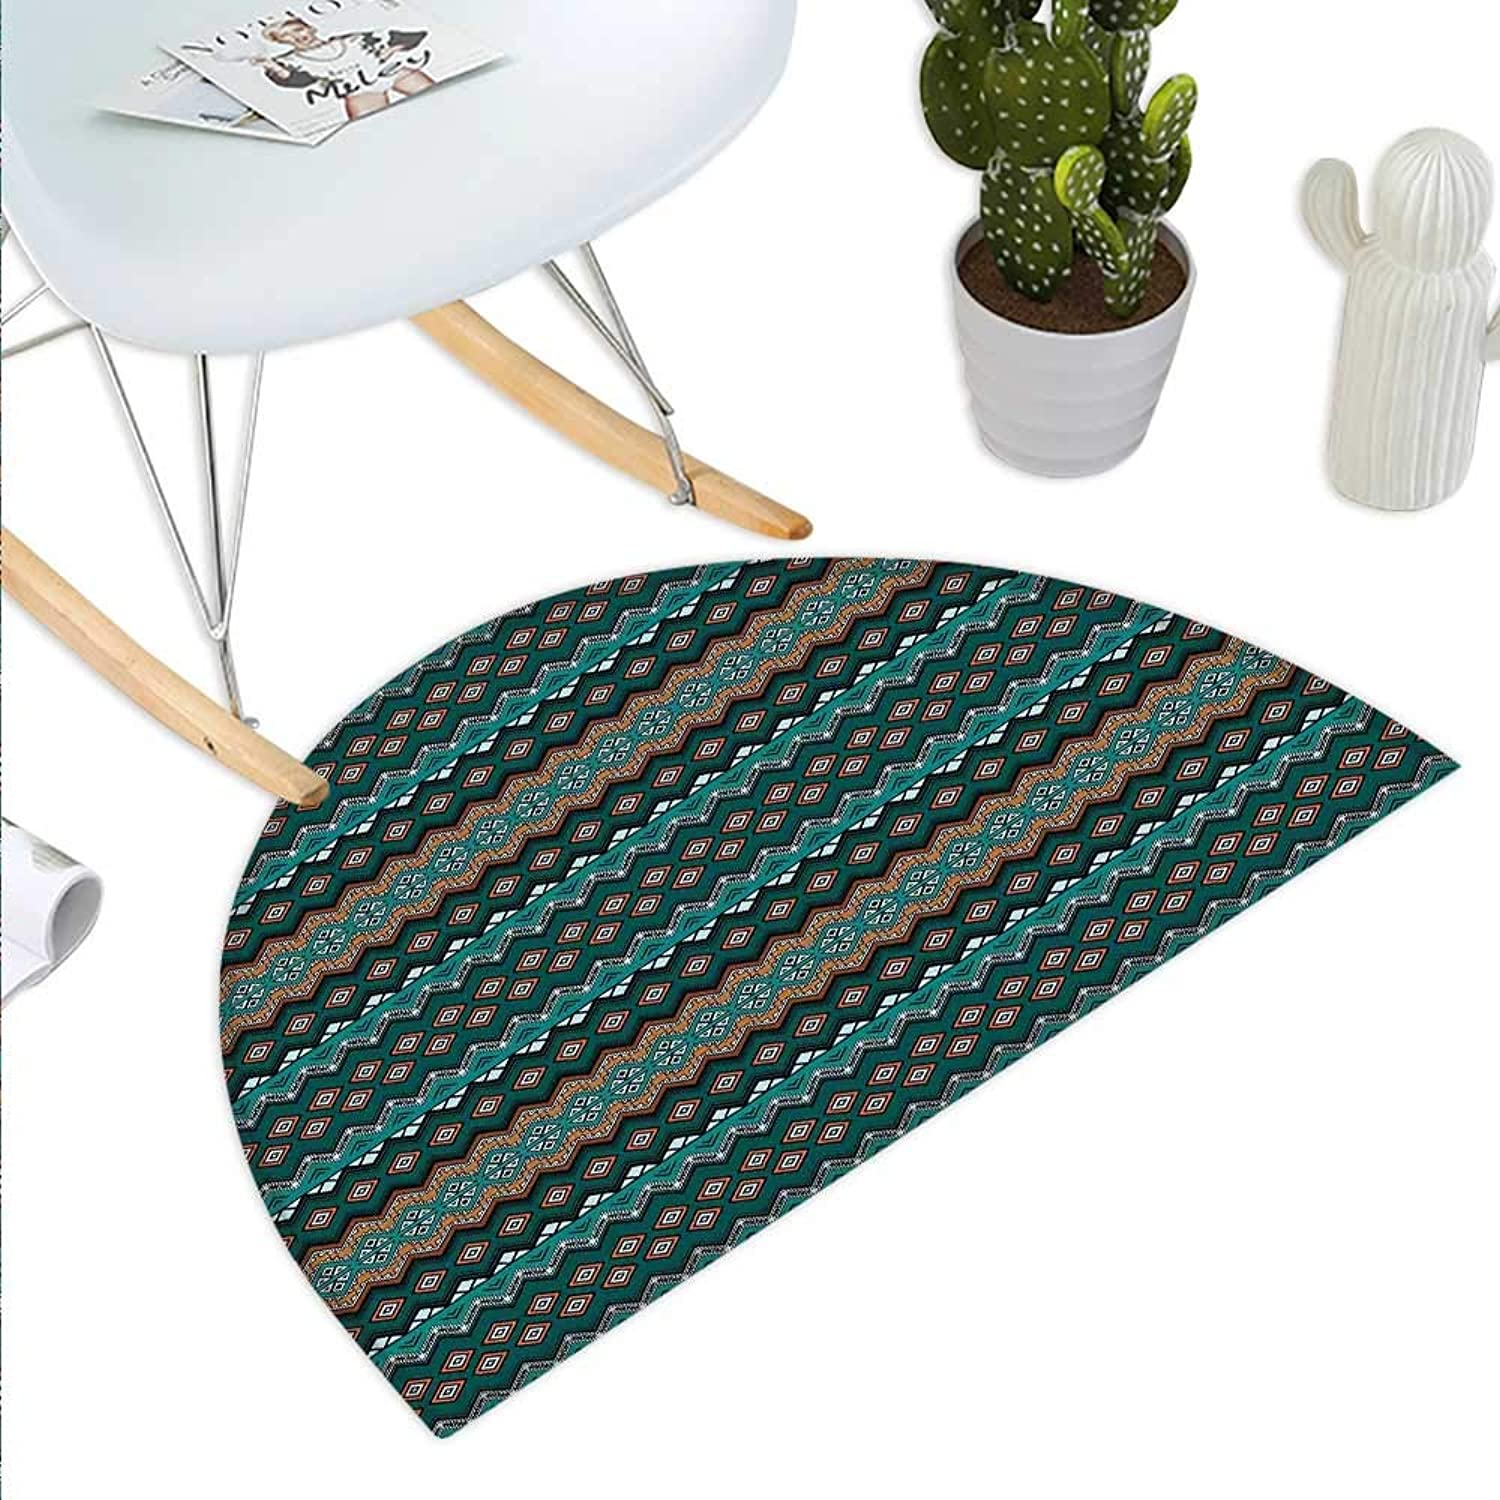 Boho Semicircle Doormat Hand Drawn Style Horizontal Borders with Triangles and Zigzag Motifs Native American Halfmoon doormats H 43.3  xD 64.9  Multicolor